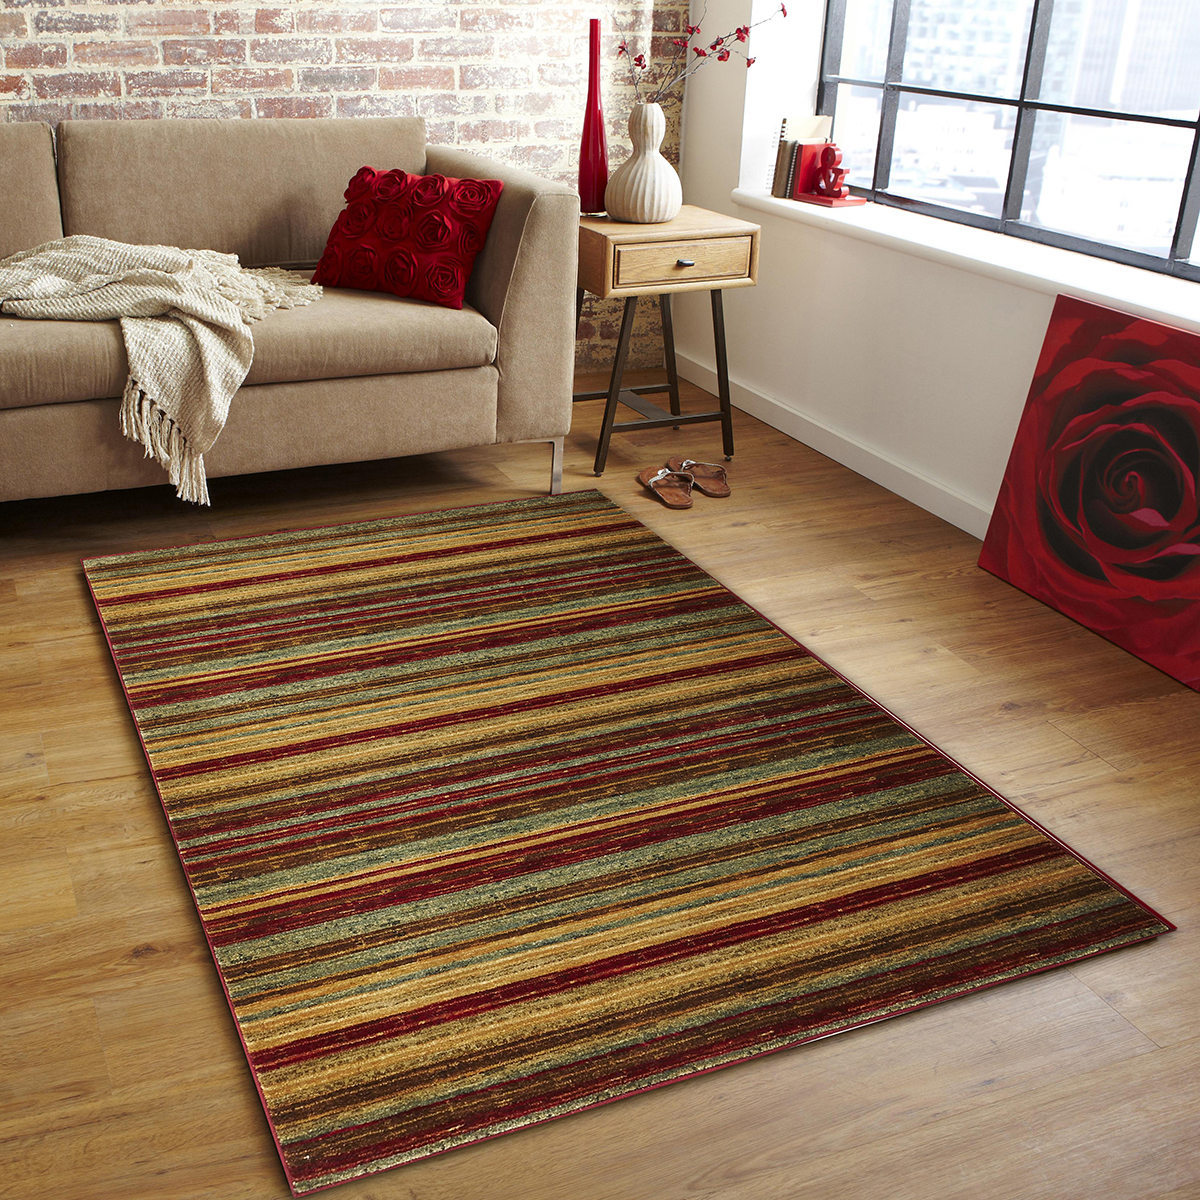 Rustic Stripe Stripped Rug Red 330x240cm Hagglehuge Online Furniture Store